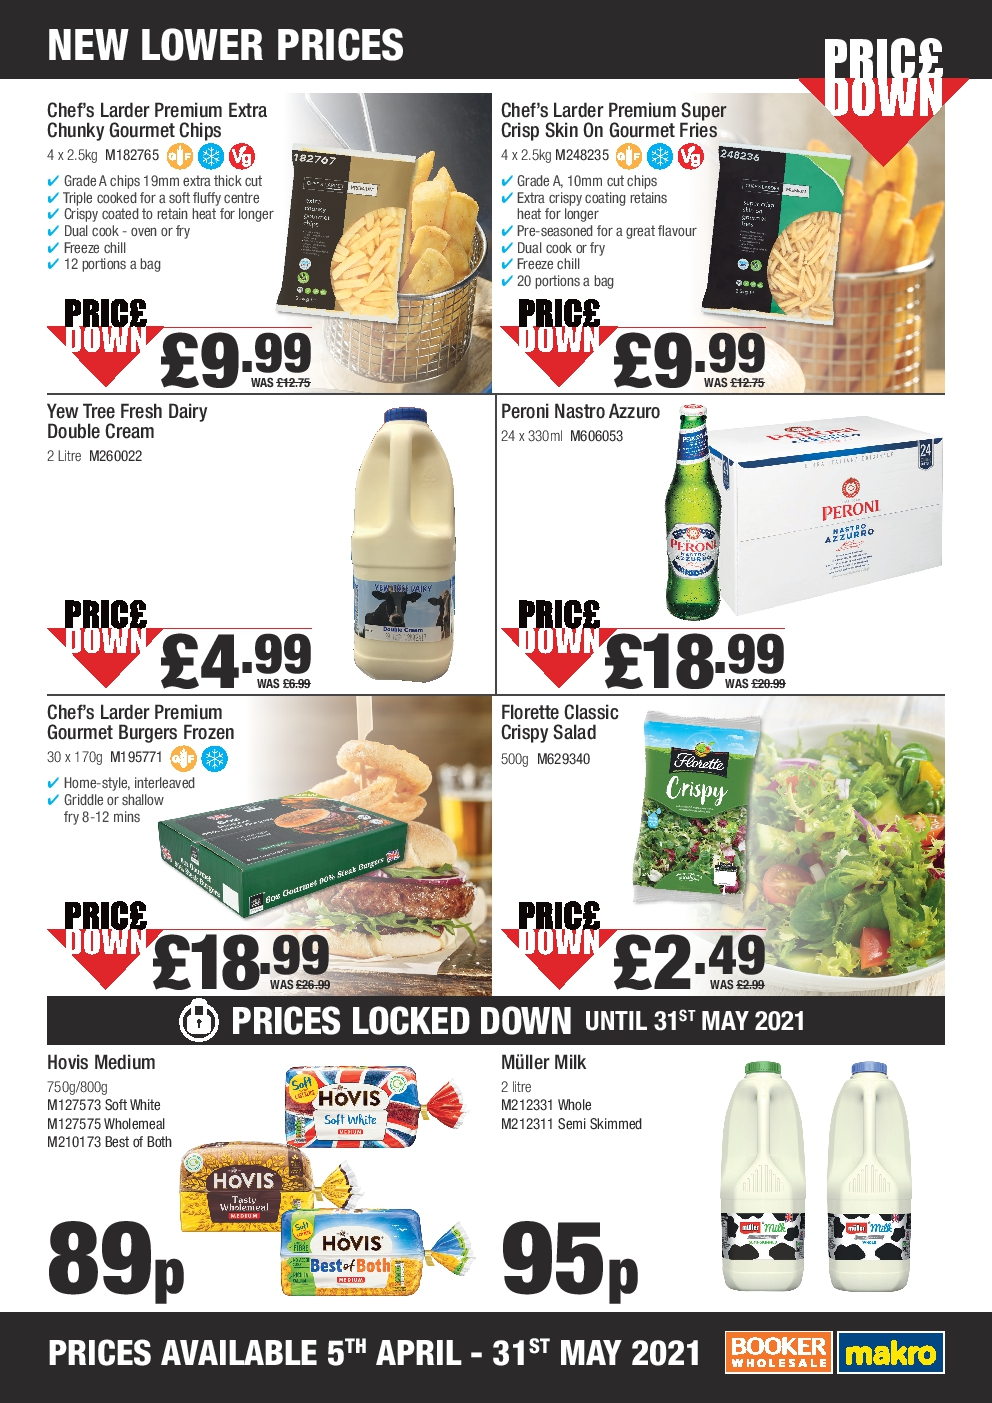 Makro Offers this month from 5th Apr - 31st May 2021